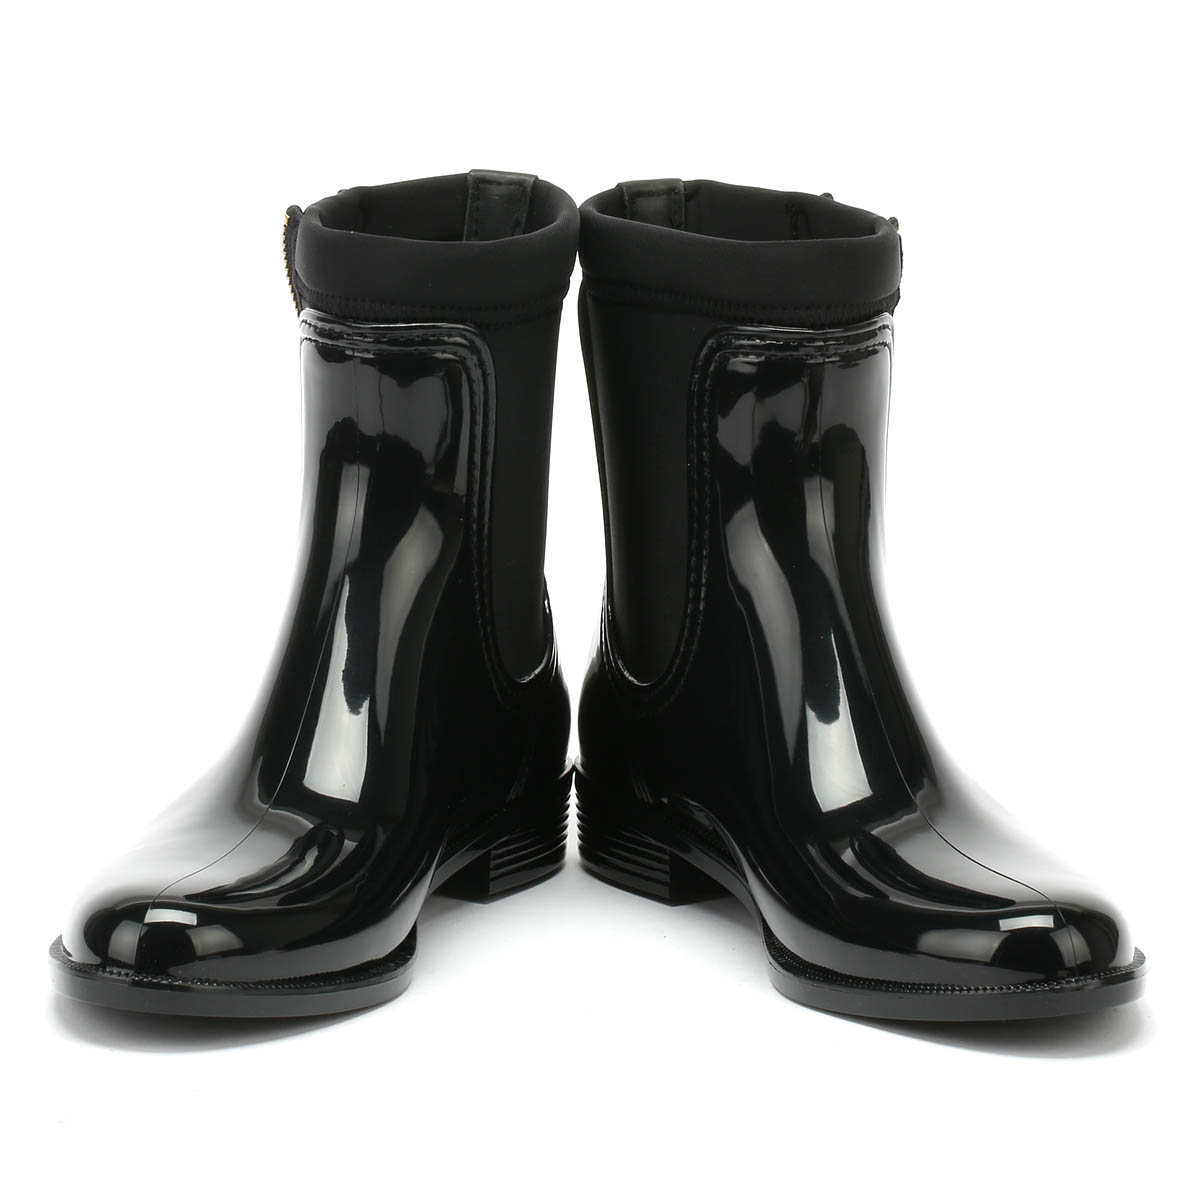 a3747322653e Tommy Hilfiger Womens Rain Boots Black Material Mix Zipped Casual ...